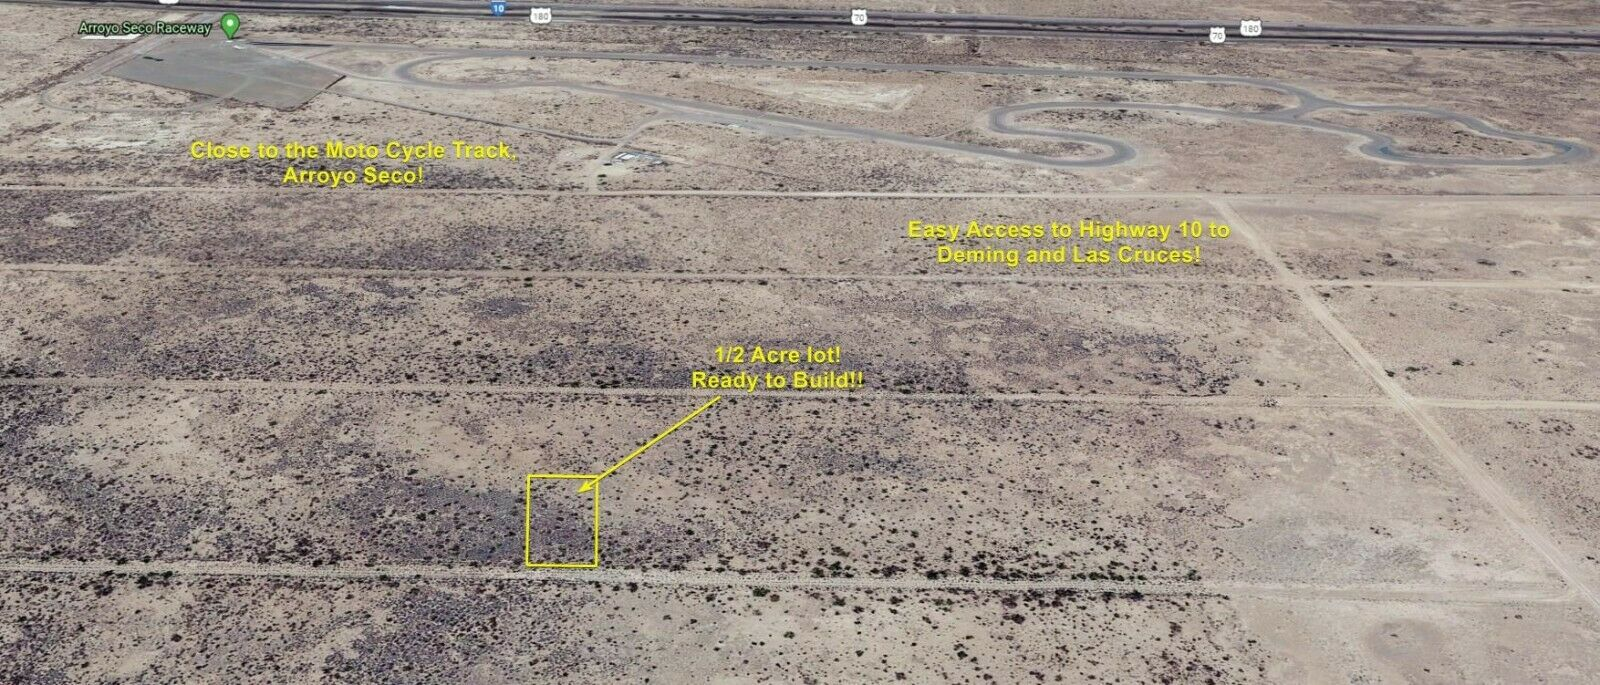 NO RESERVE 1/2 Acre Land 4 Sale In Deming, New Mexico. INVEST IN LAND TODAY  - $387.00